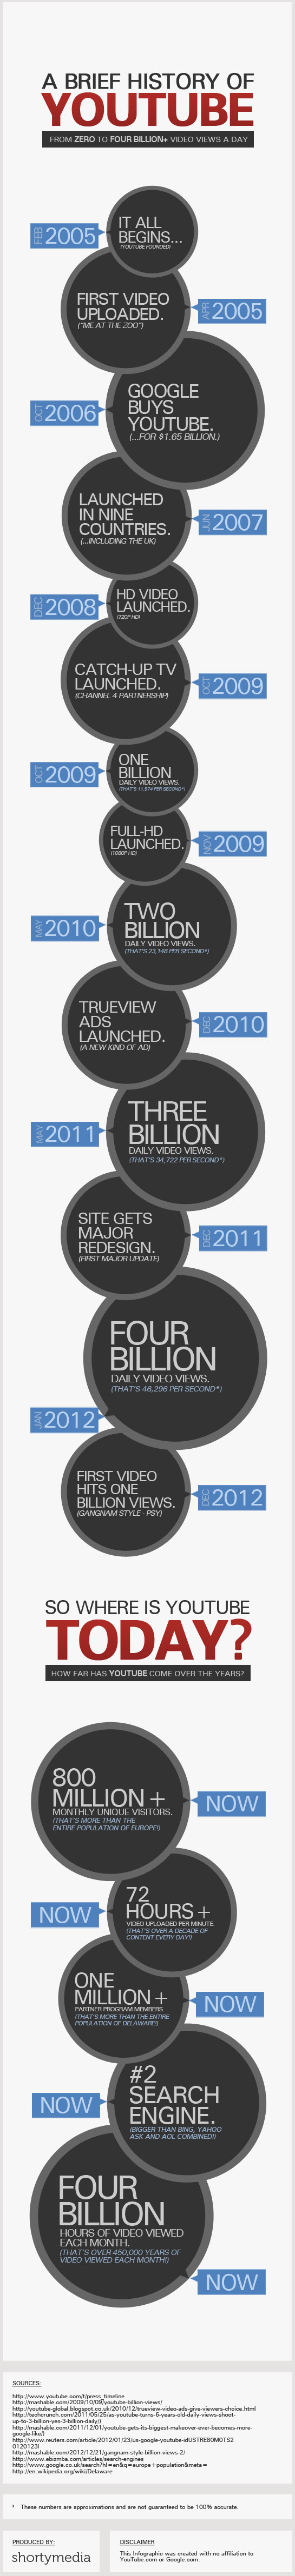 The Facts and Figures on YouTube in 2013 - Infographic | Jeffbullas's Blog